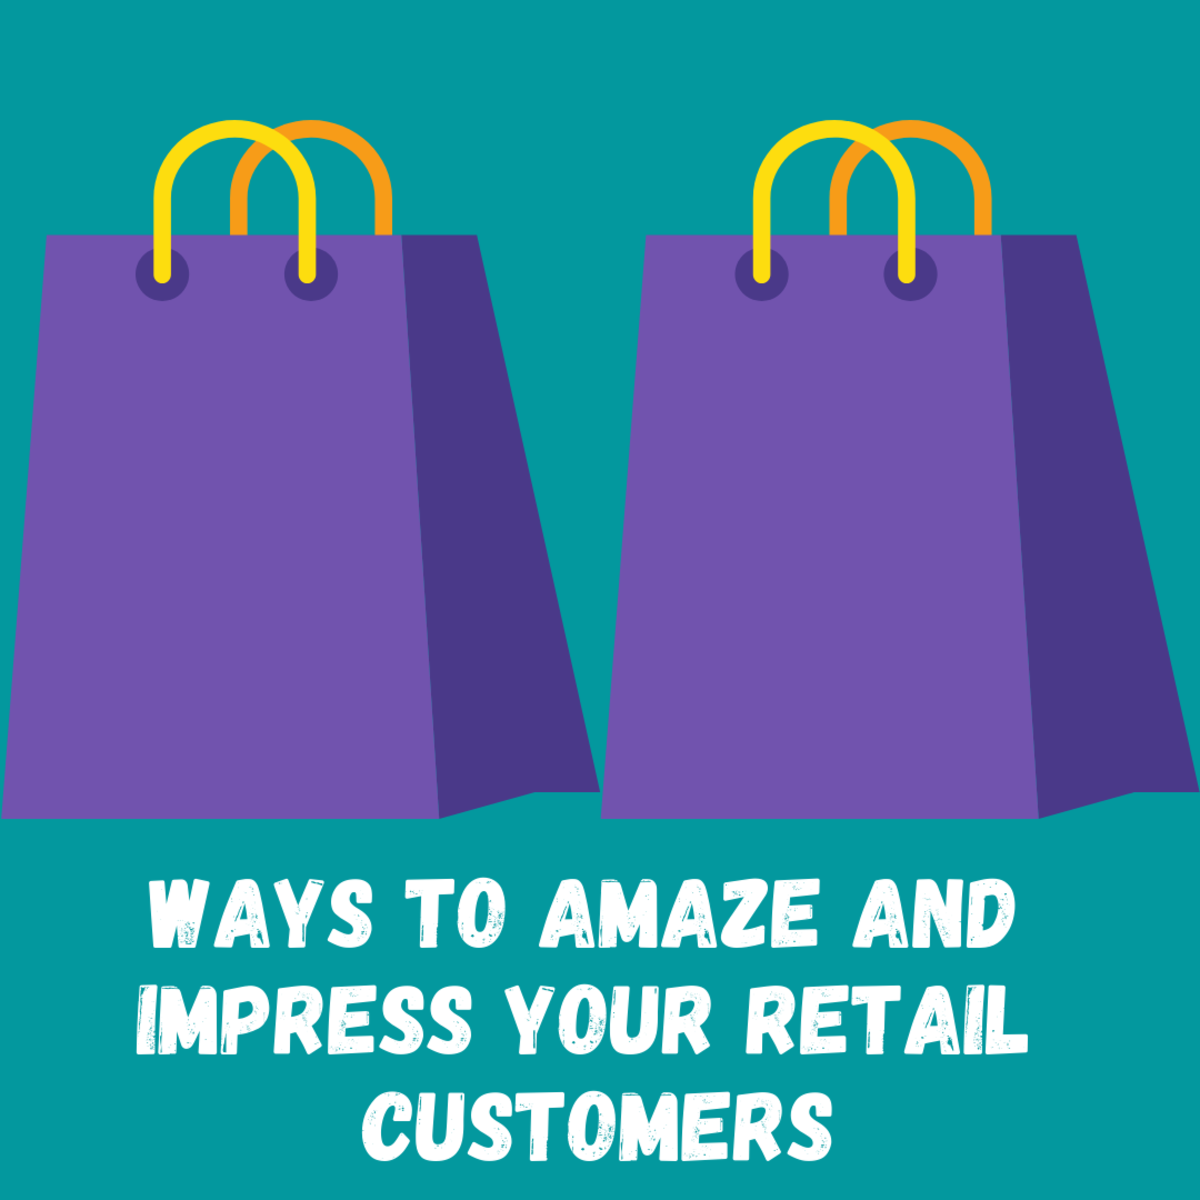 These 16 ways of impressing your retail customers will help your business greatly!